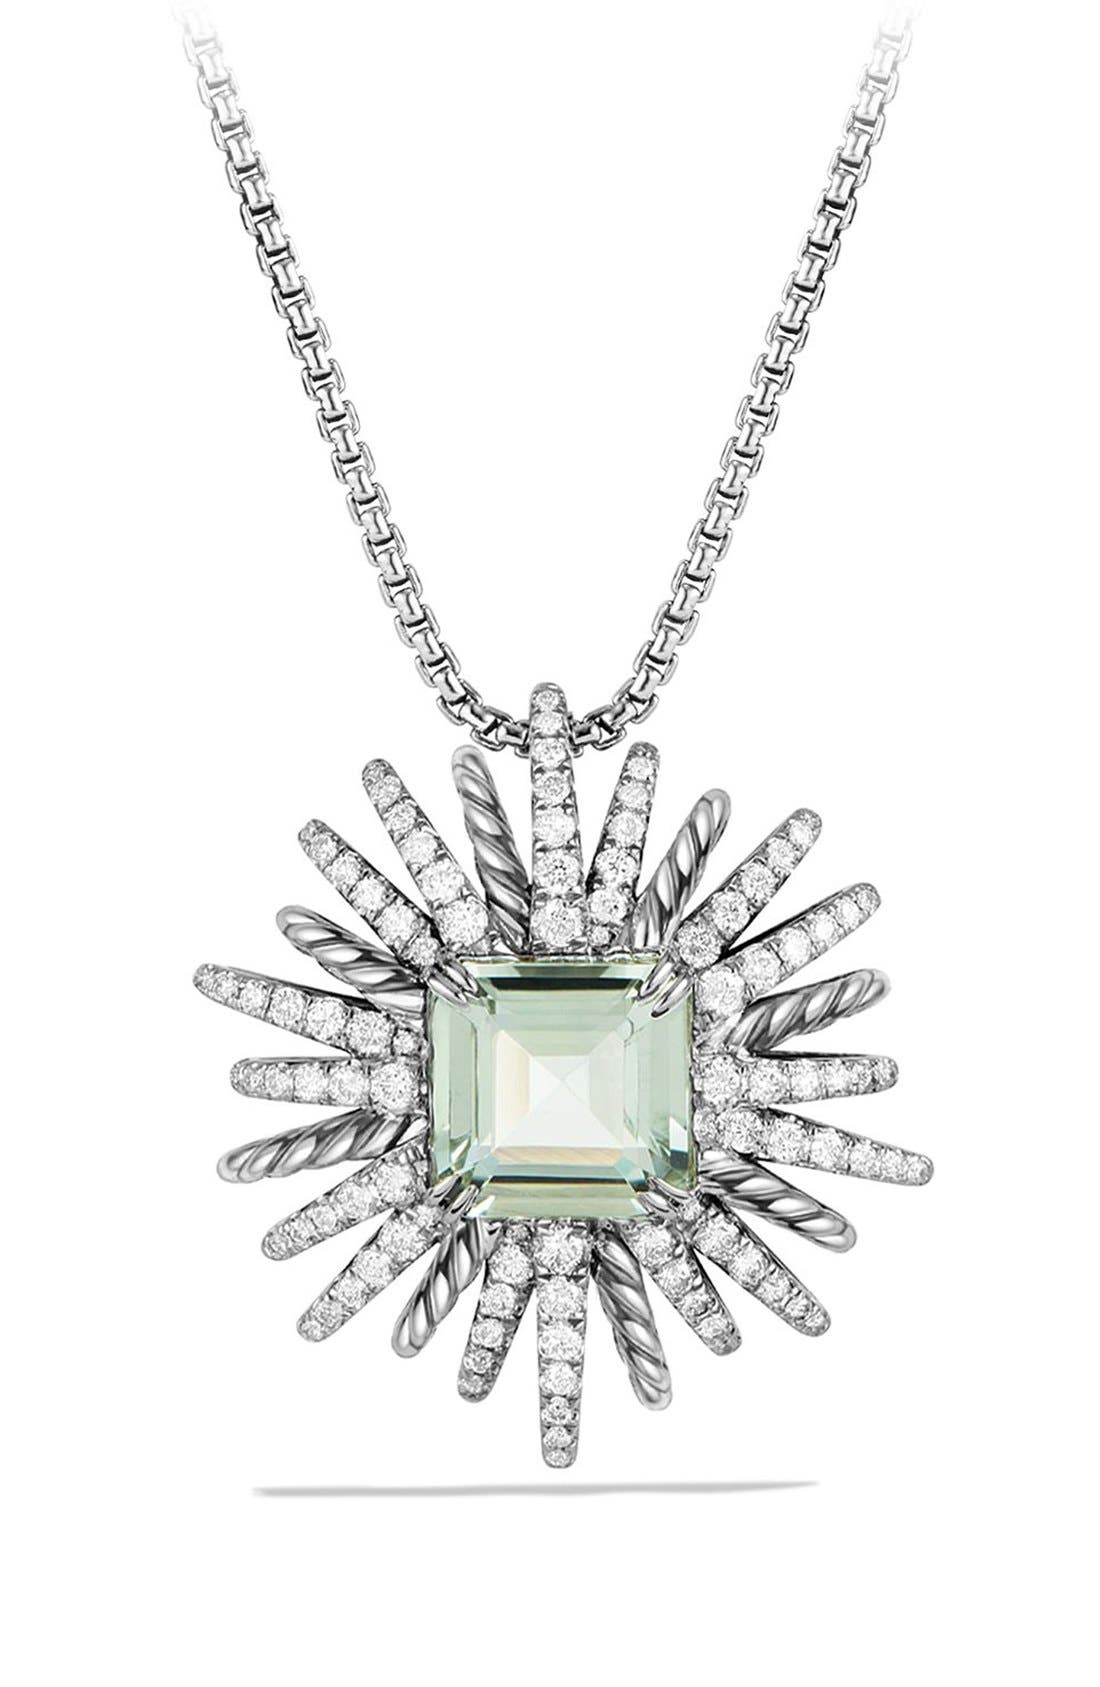 'Starburst' Necklace with Diamonds in Silver,                         Main,                         color, Prasiolite